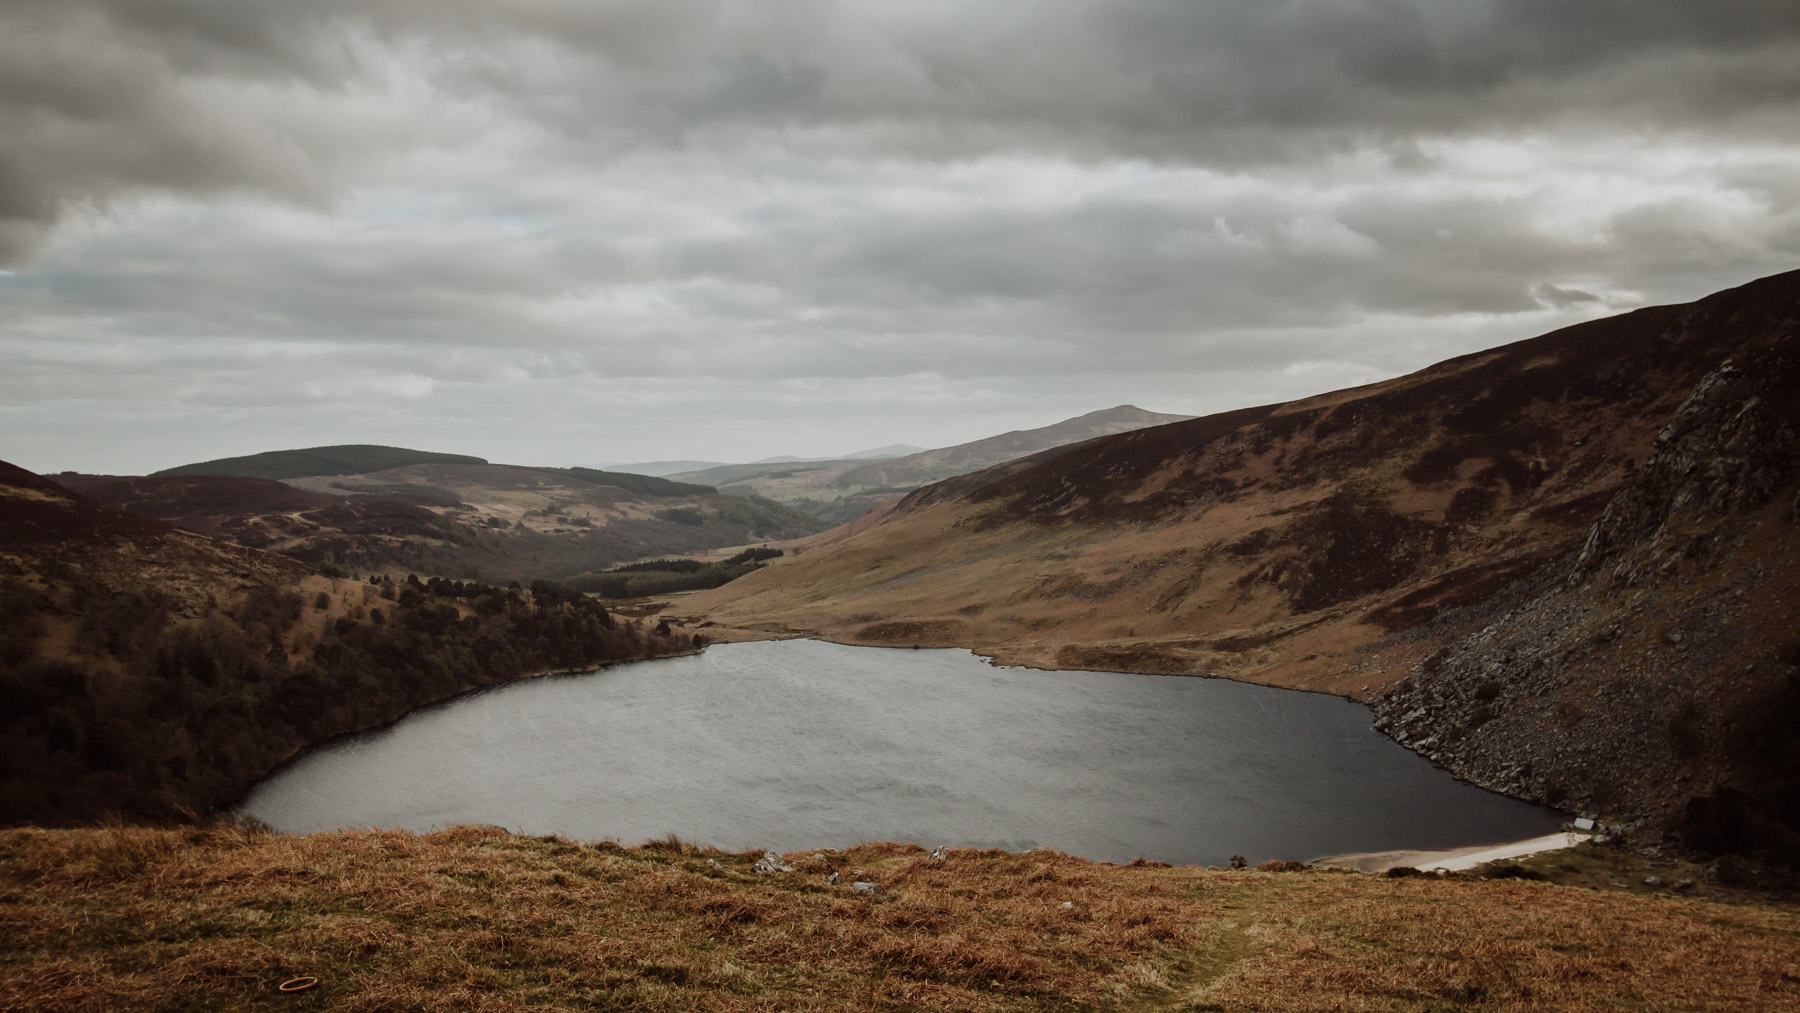 Lough Tay (Guinness Lake), Co. Wicklow